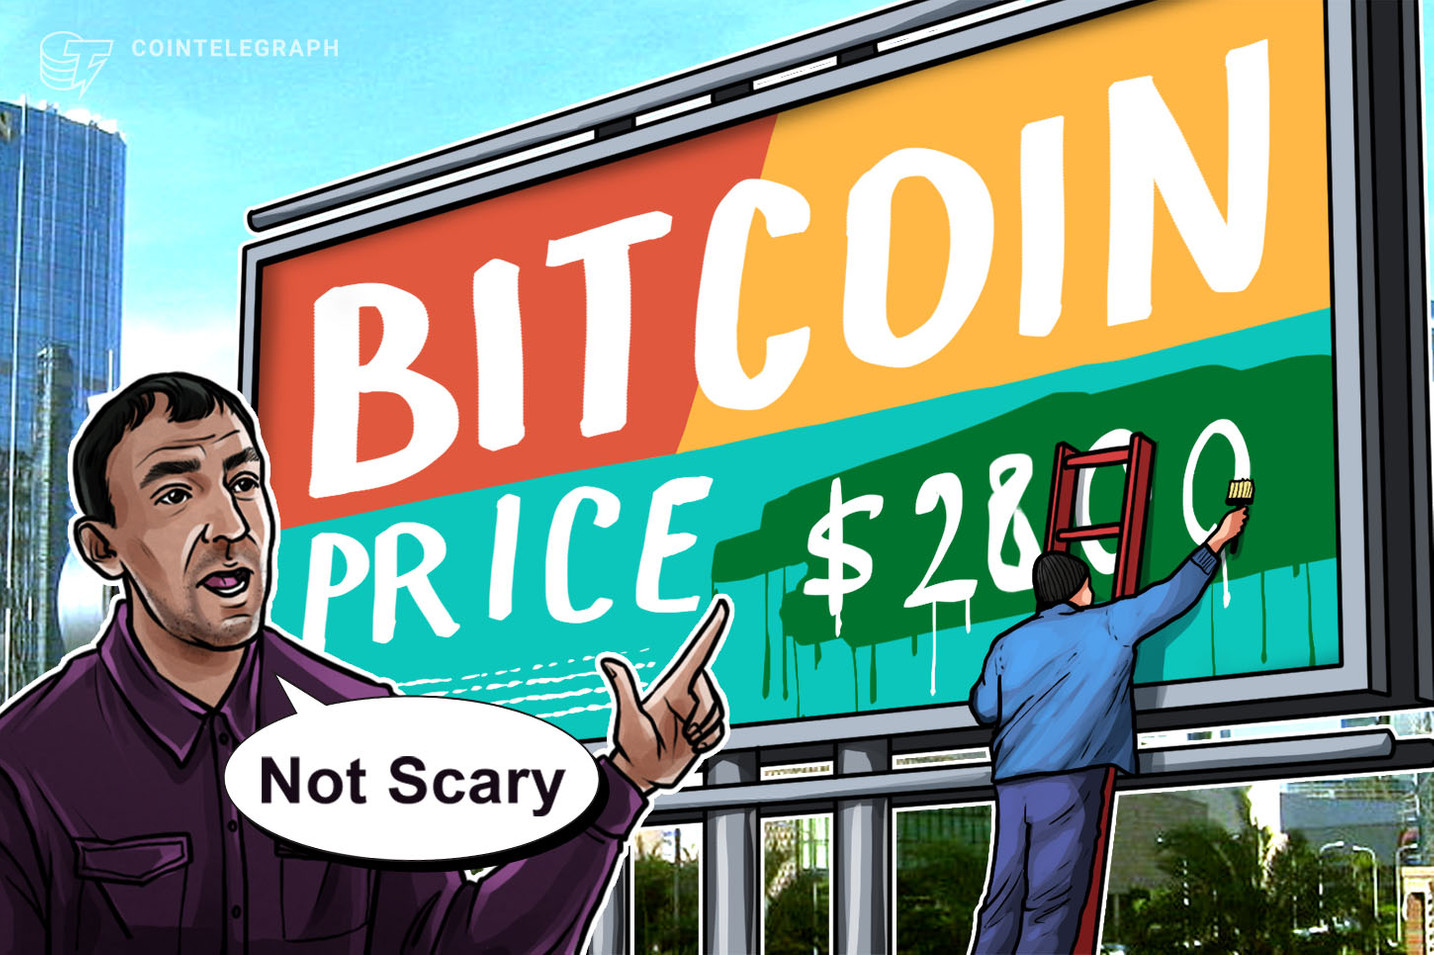 Bitcoin Price Hitting $2.8K 'Not Scary' Before May Halving — Tone Vays